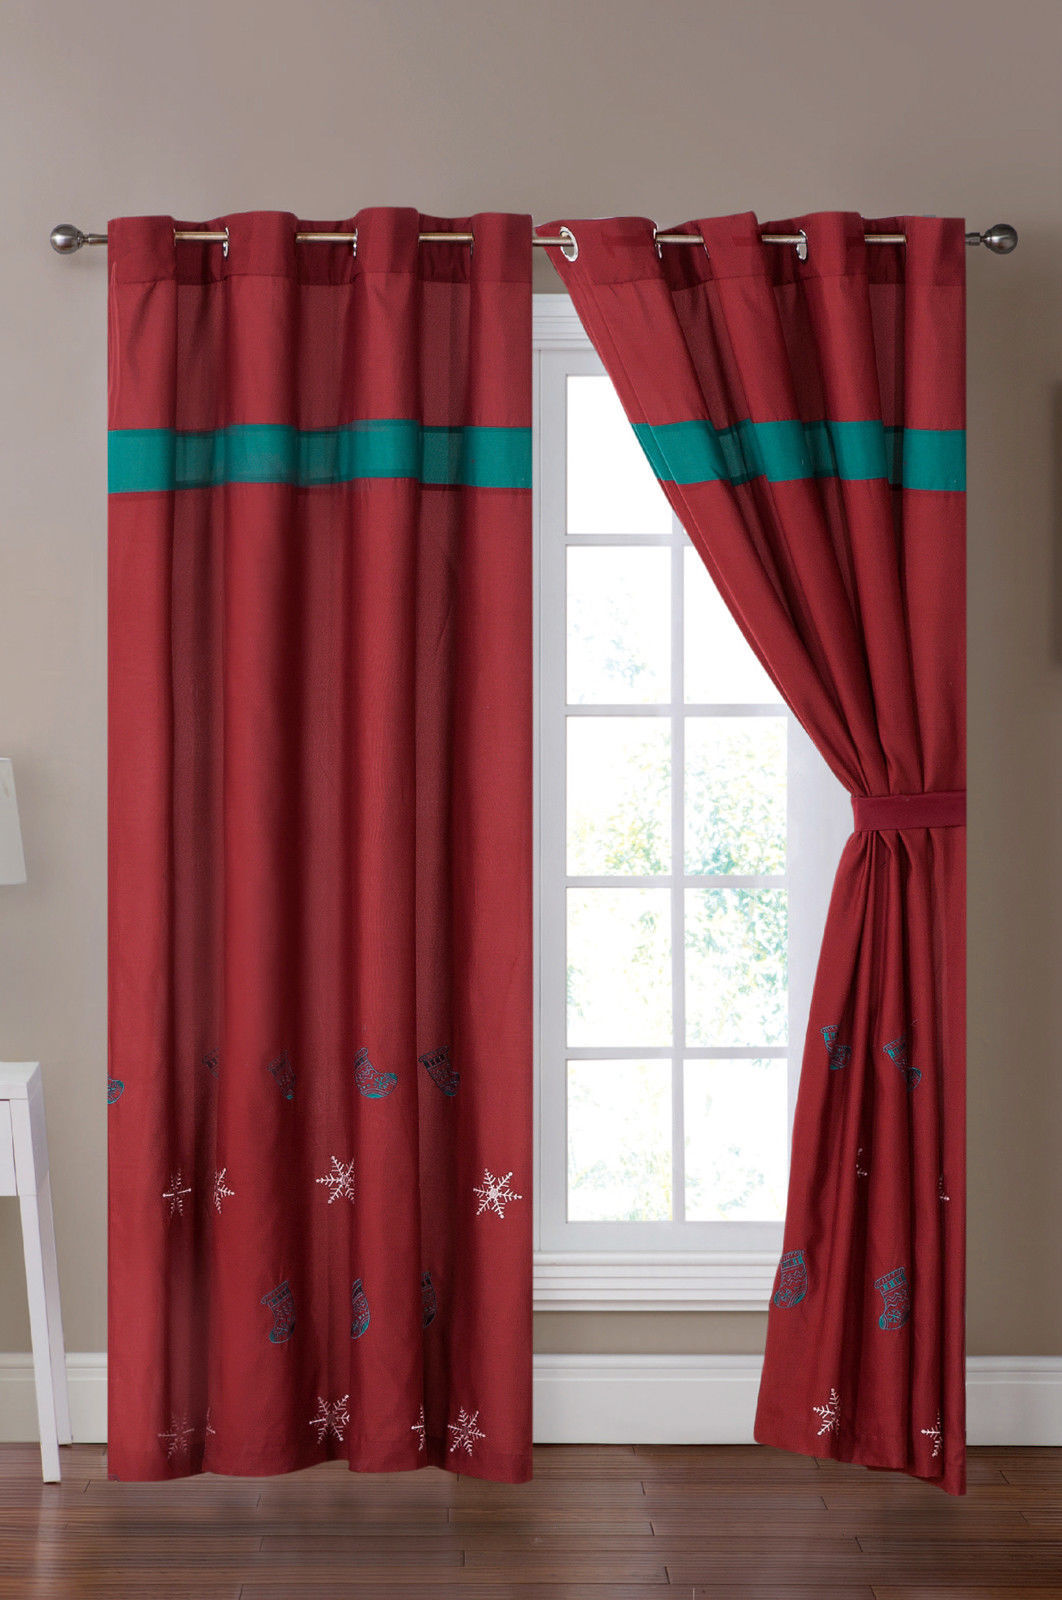 Primary image for 4-P Xmas Stocking Snowflake Embroidery Curtain Set Burgundy Red Teal Green Sheer